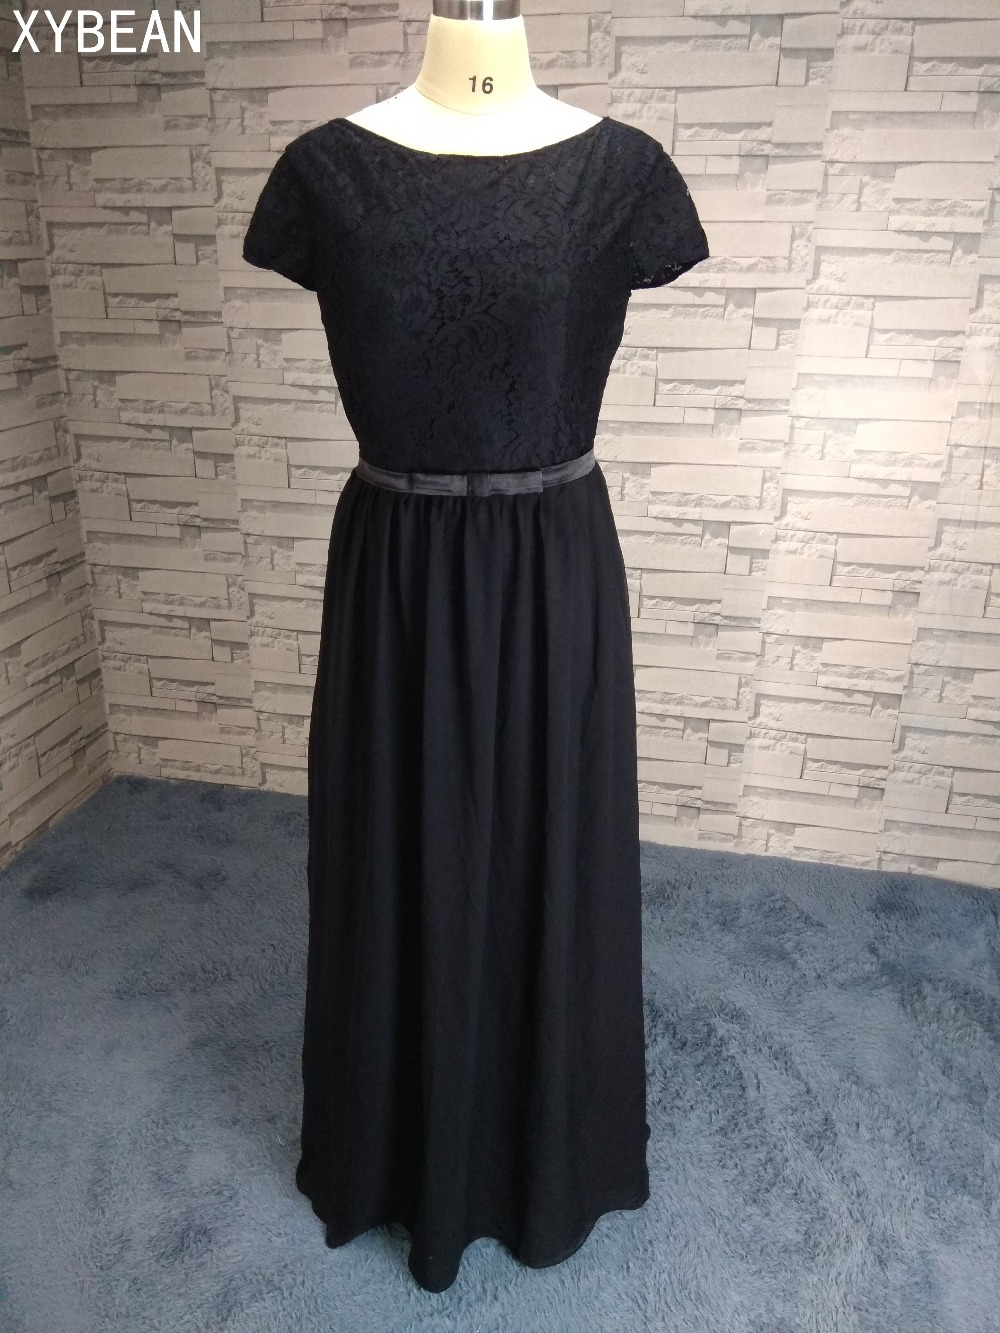 New Free Shipping ! Cheap Price ! Sexy Chiffon Scoop Long Evening Dresses